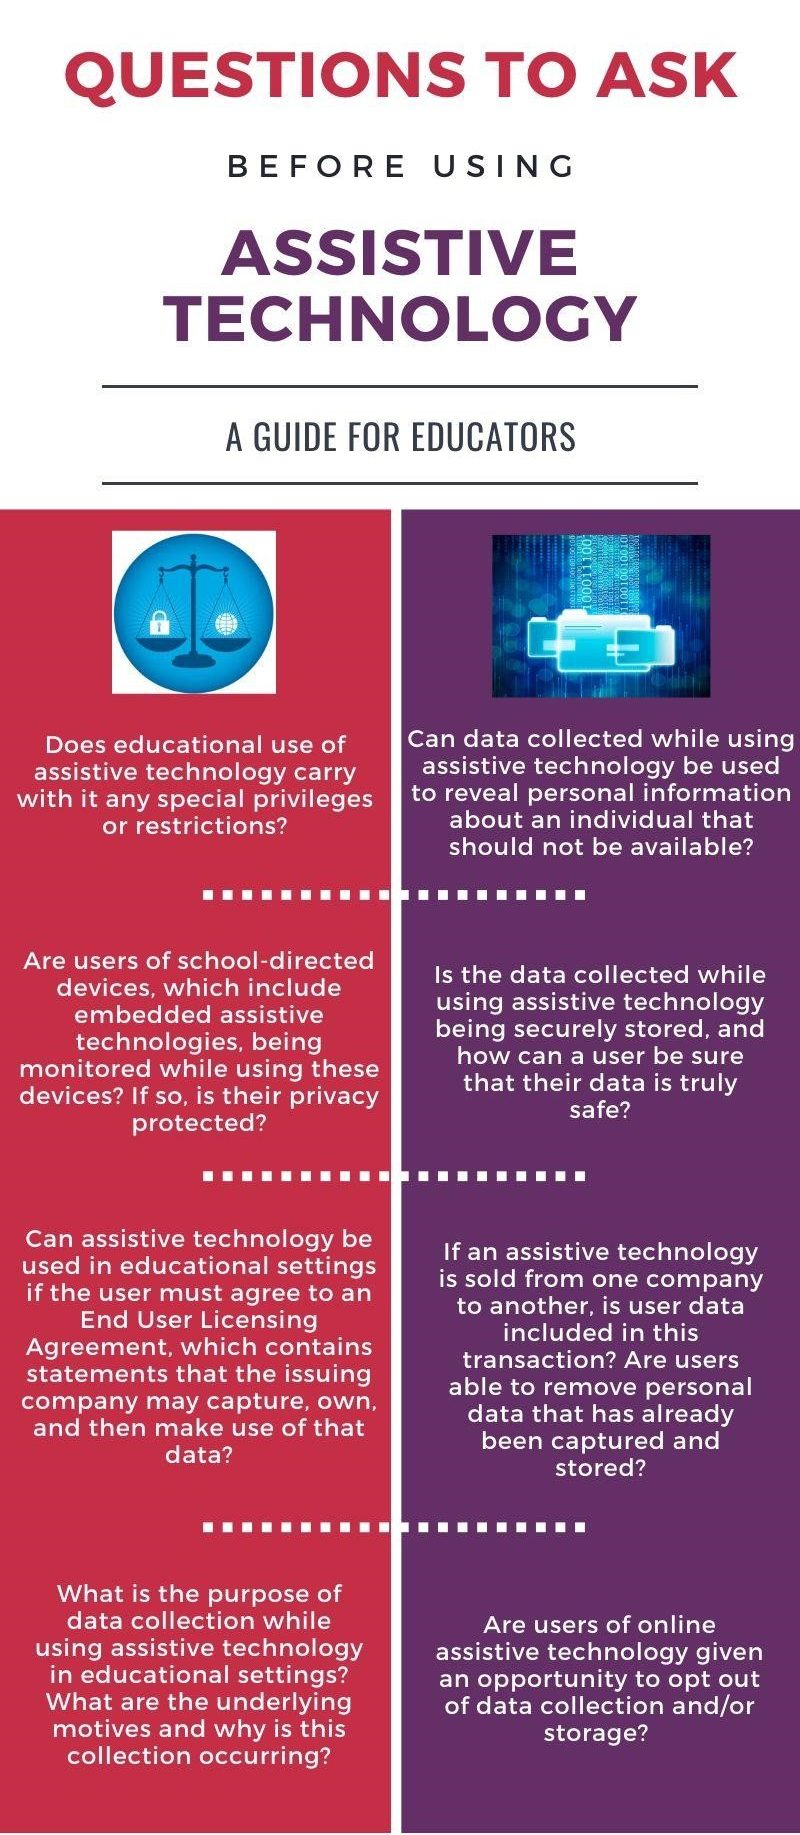 An infographic providing educators with questions to ask before using assistive technologies.